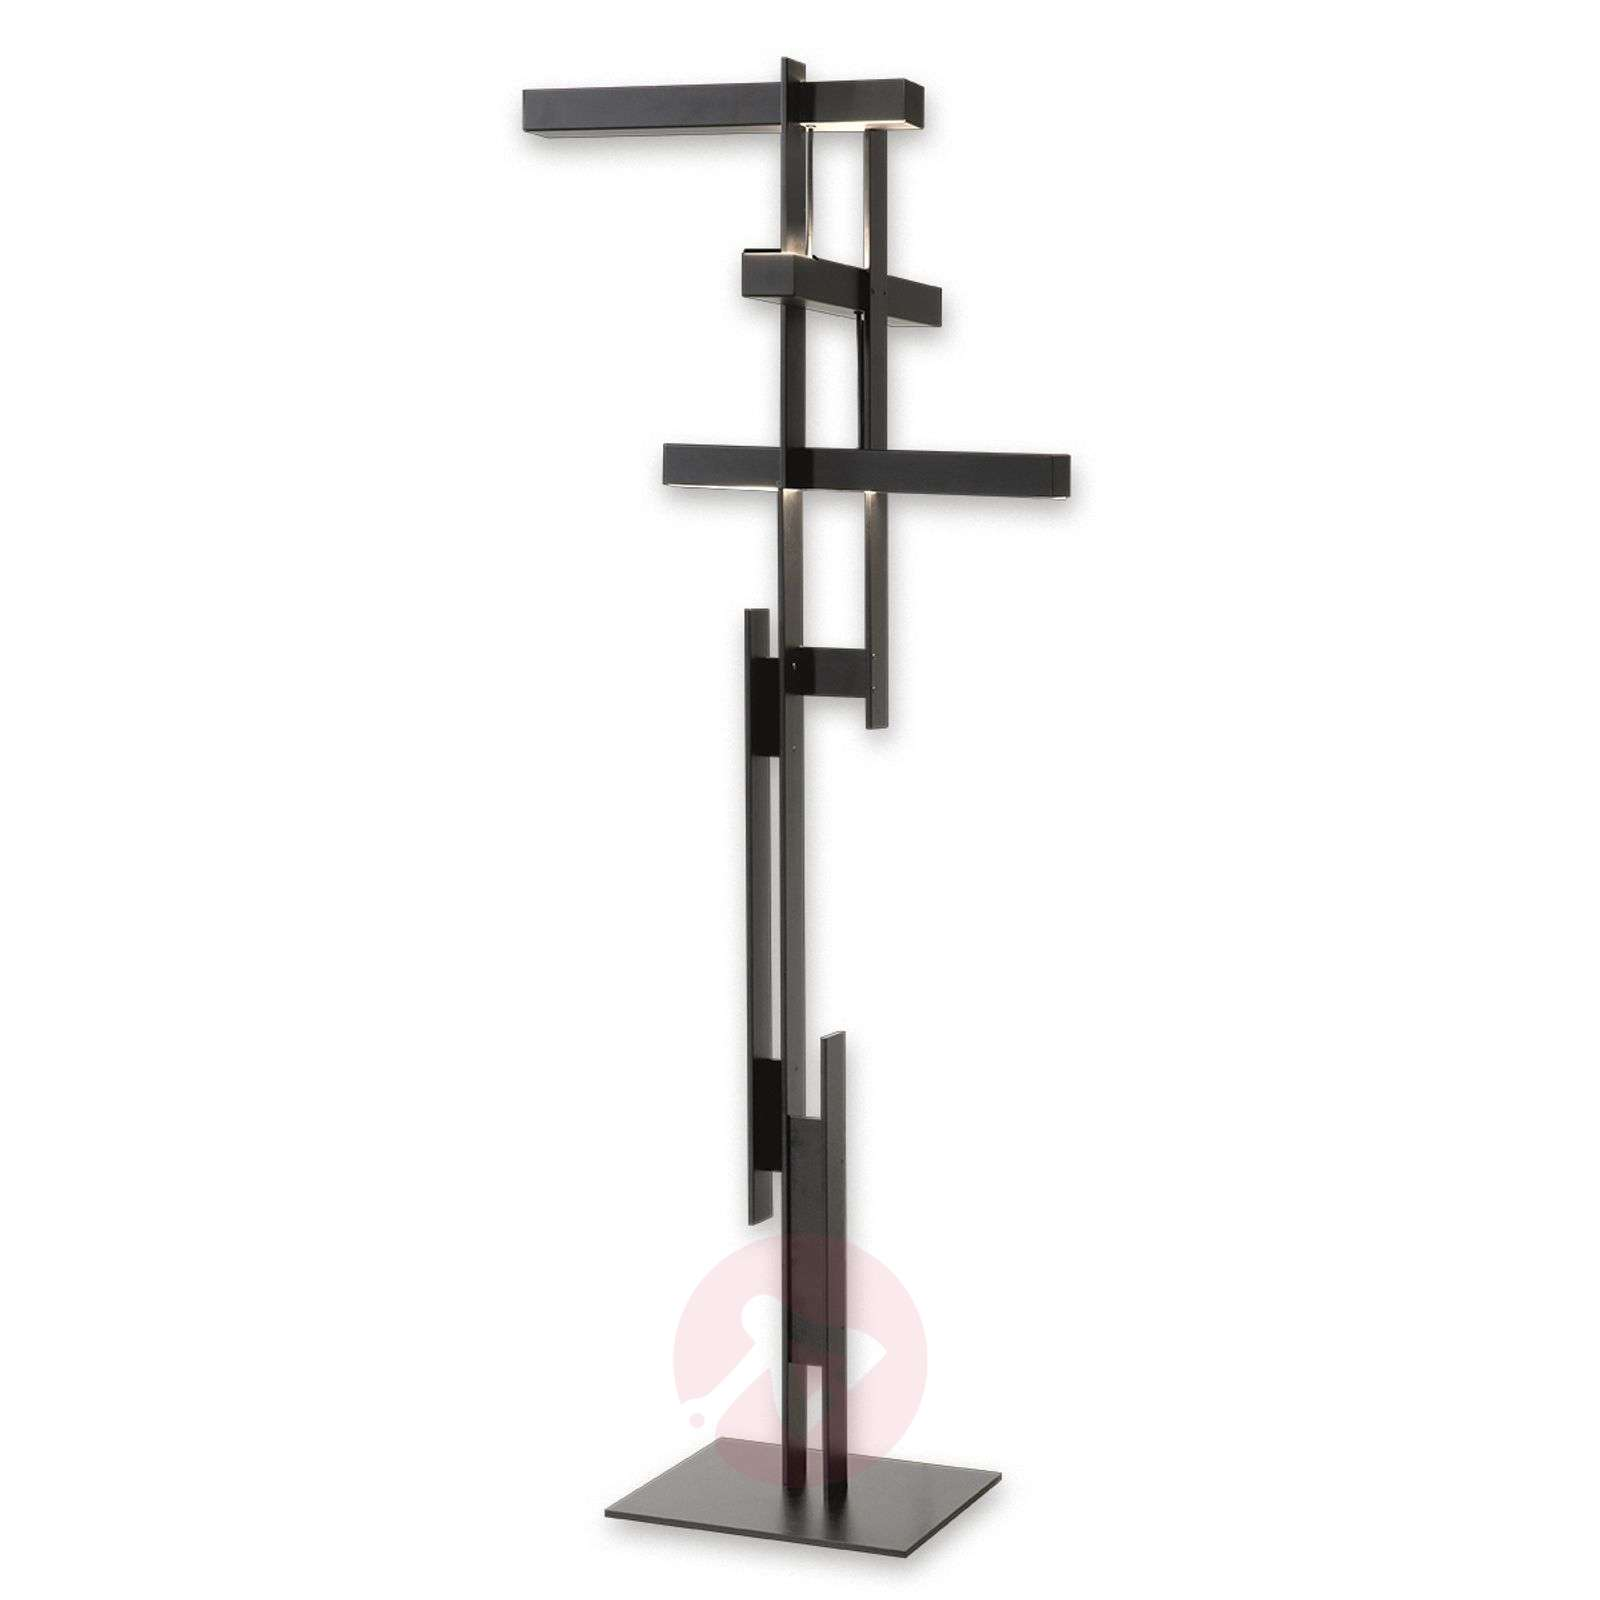 Abstract LED floor lamp Las in matt black-7265094-01